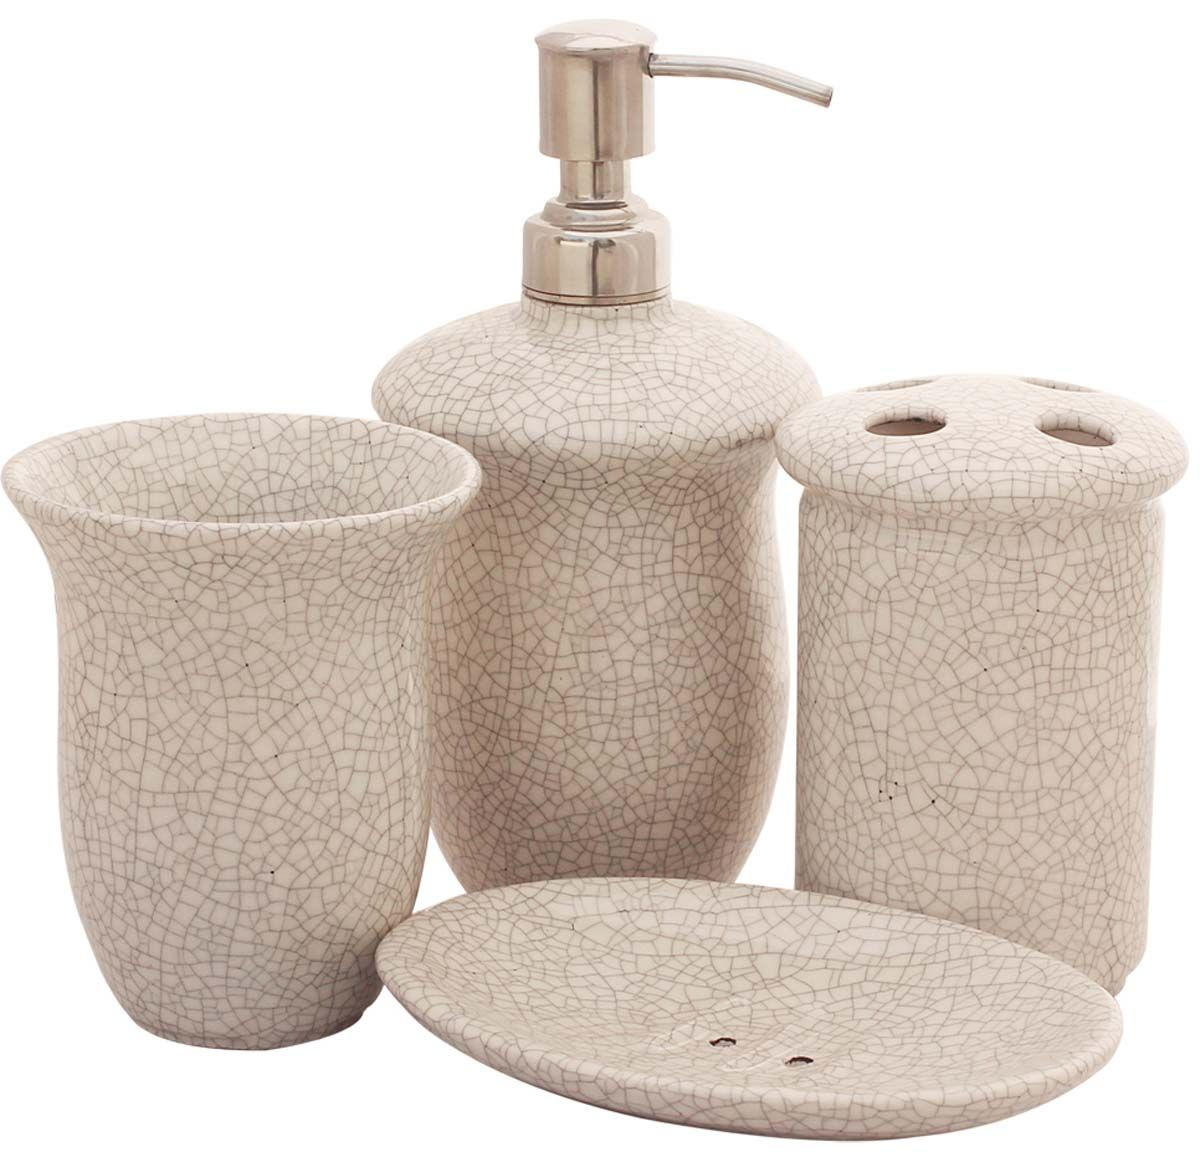 Bulk Wholesale Handmade Ceramic Bath Accessories Set (3 Items